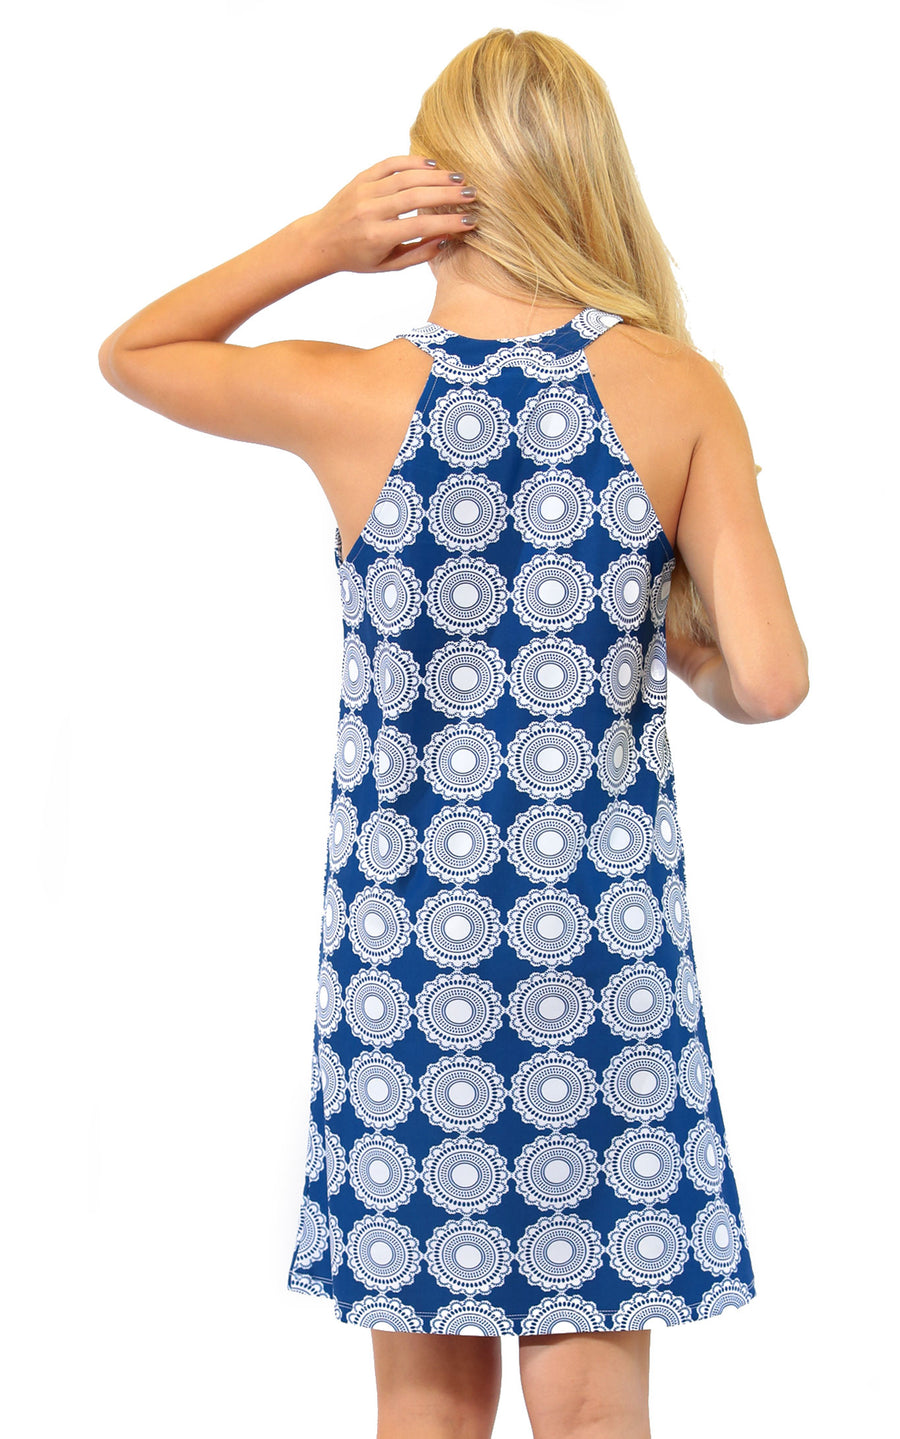 All For Color-Sand Dollar Seaview Court High Neck Shift Dress - FINAL SALE-Dresses